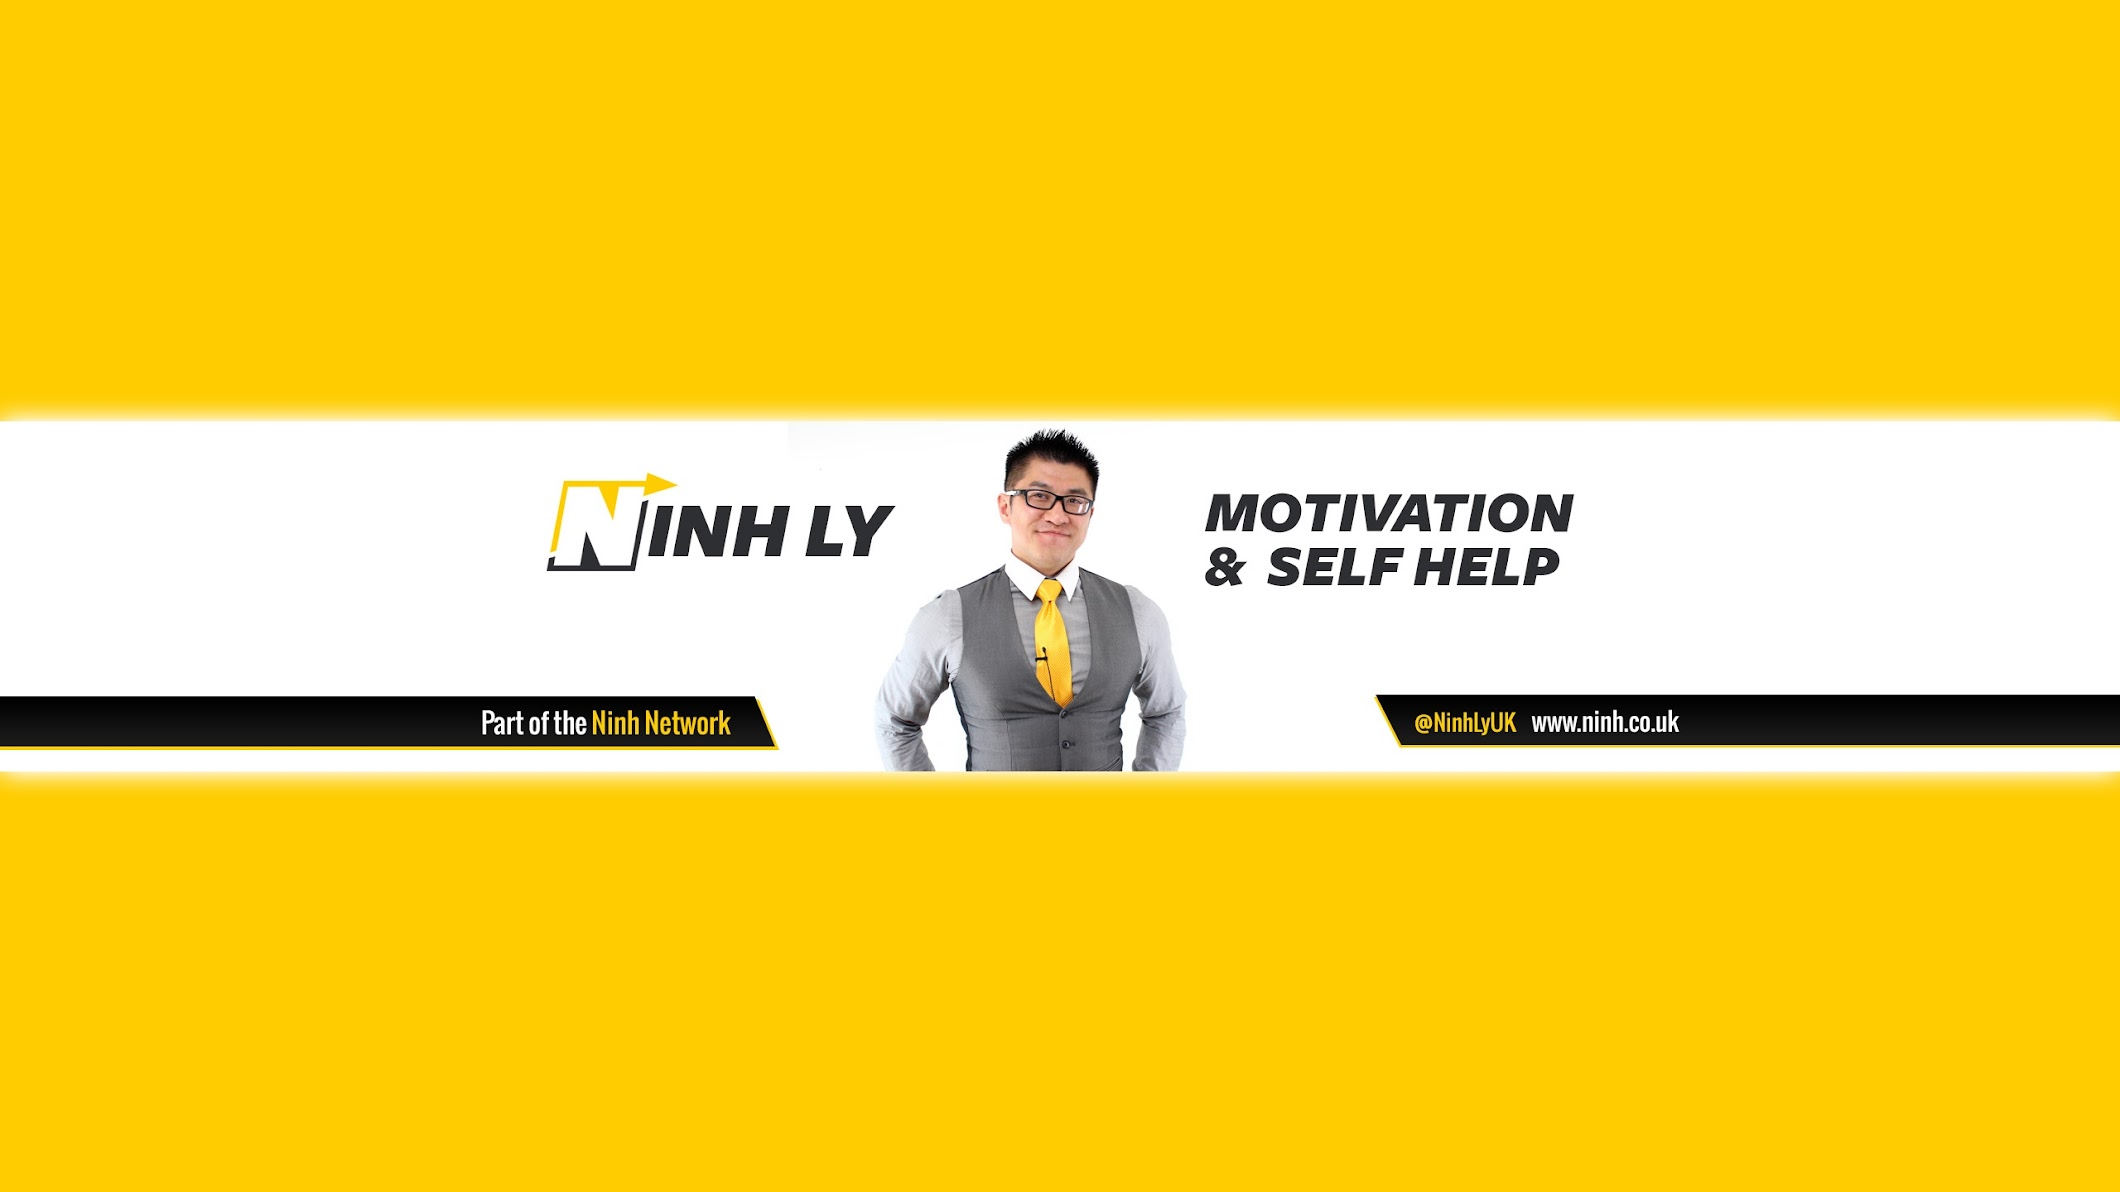 Ninh Ly - Motivation & Self Help